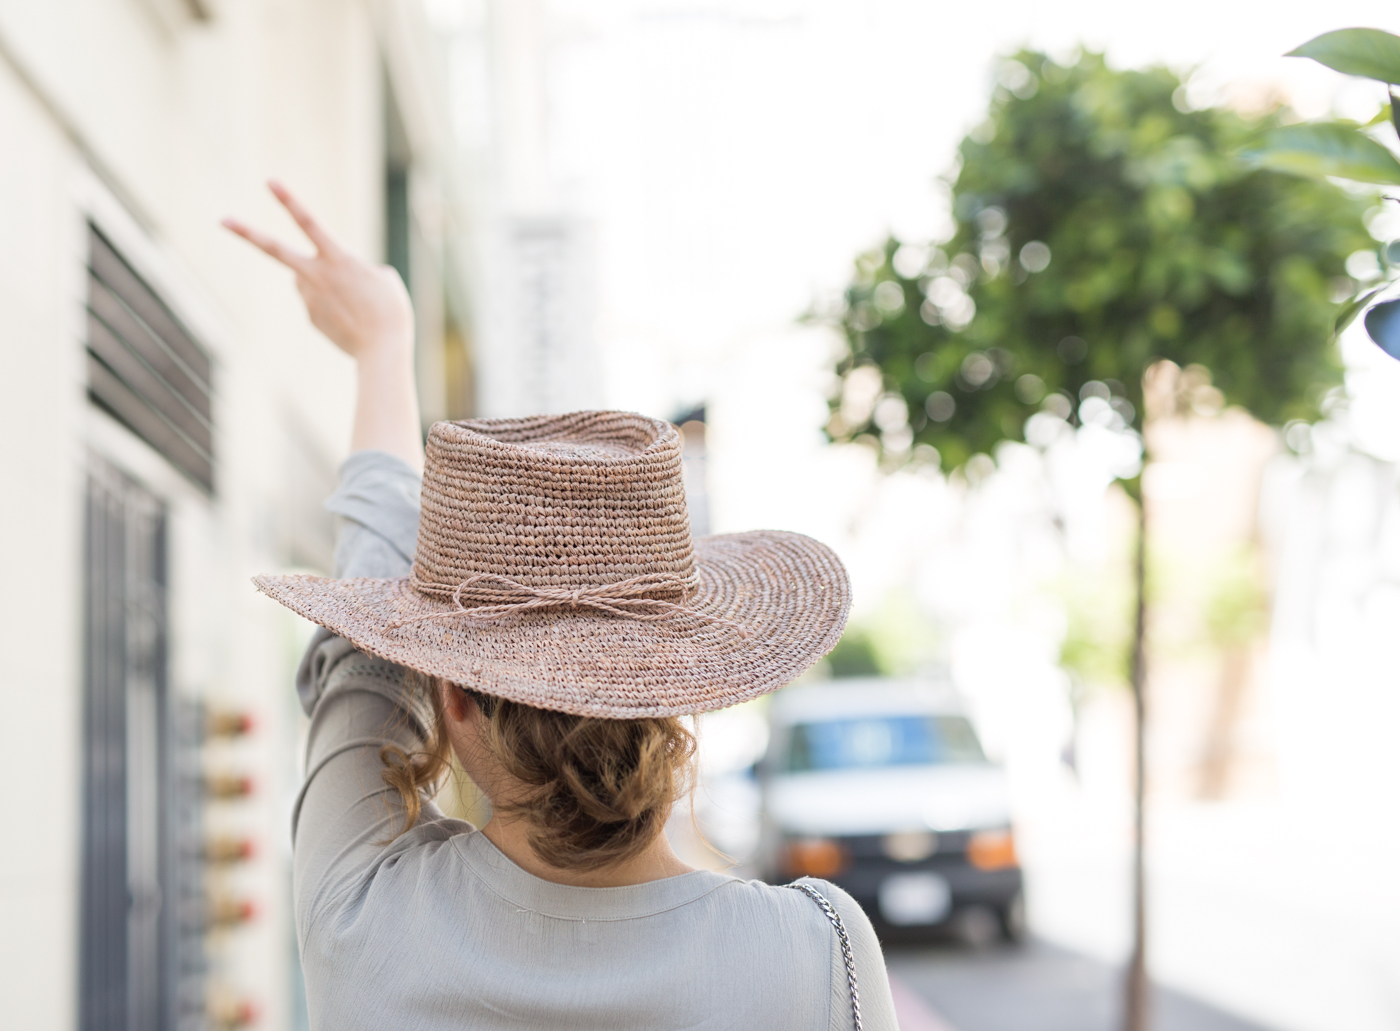 San Diego Hat Co Oval Crown Raffia Hat   The Chic Diary